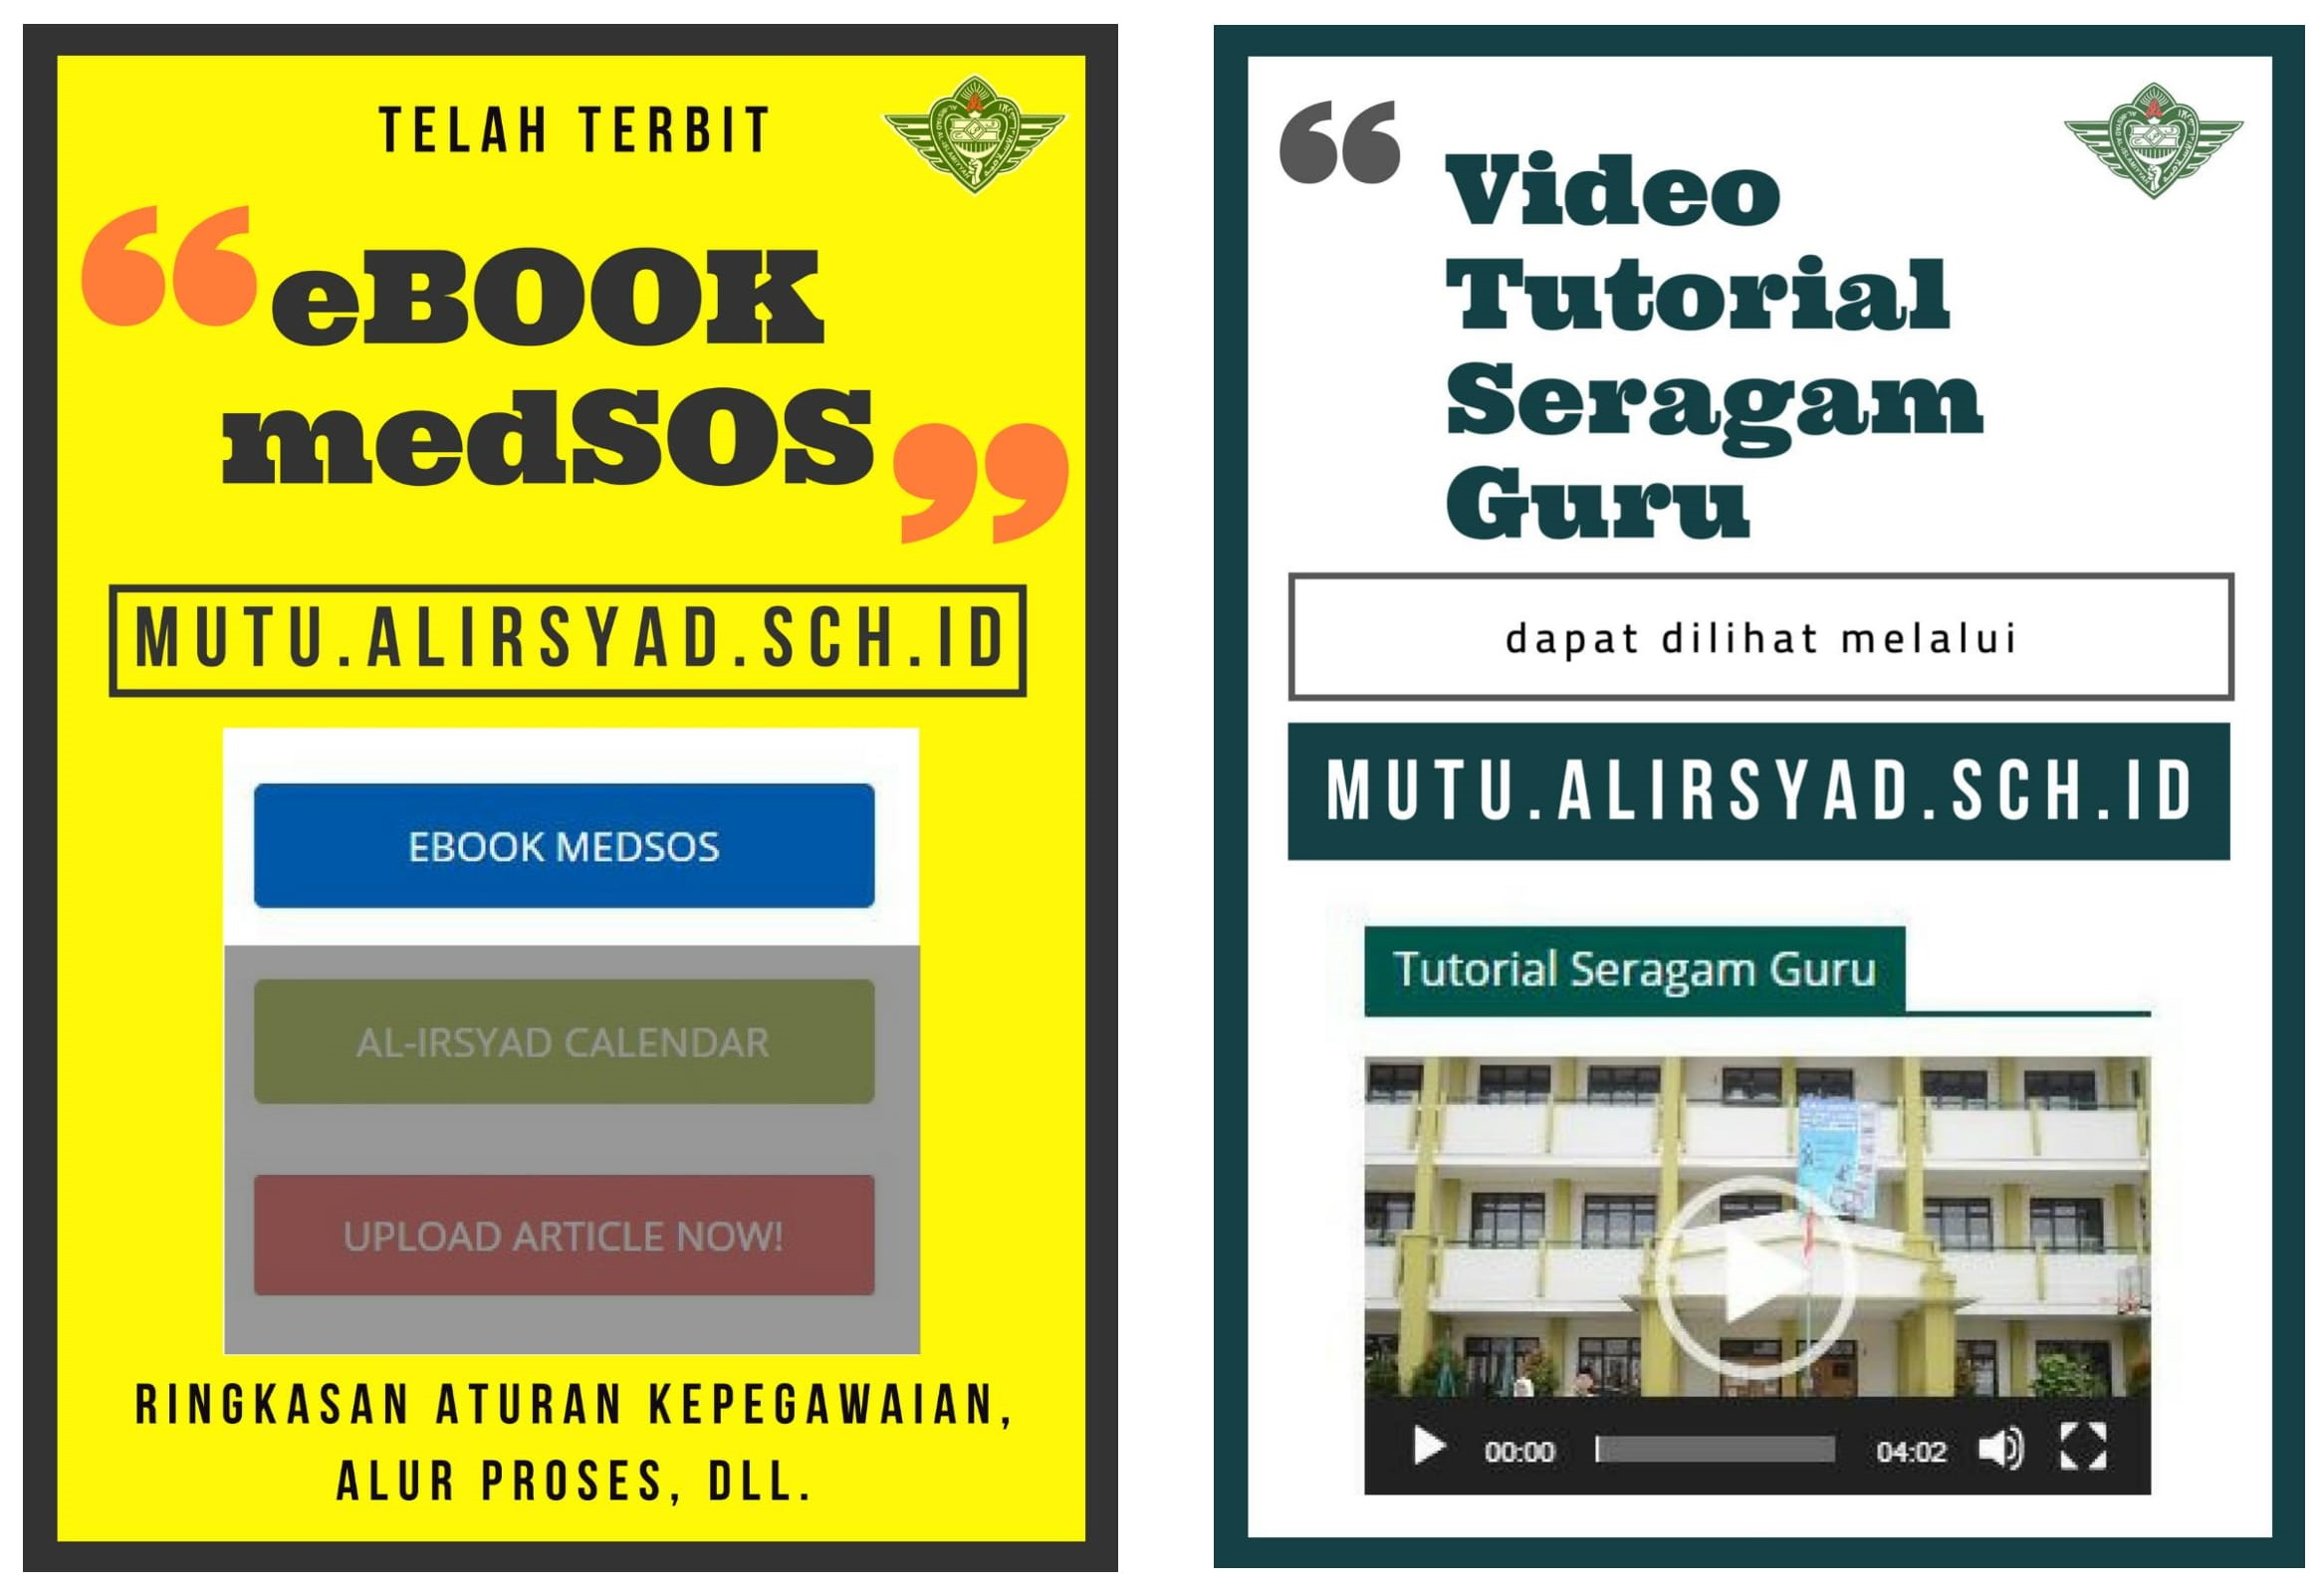 eBook medSOS dan Video Tutorial Seragam Guru